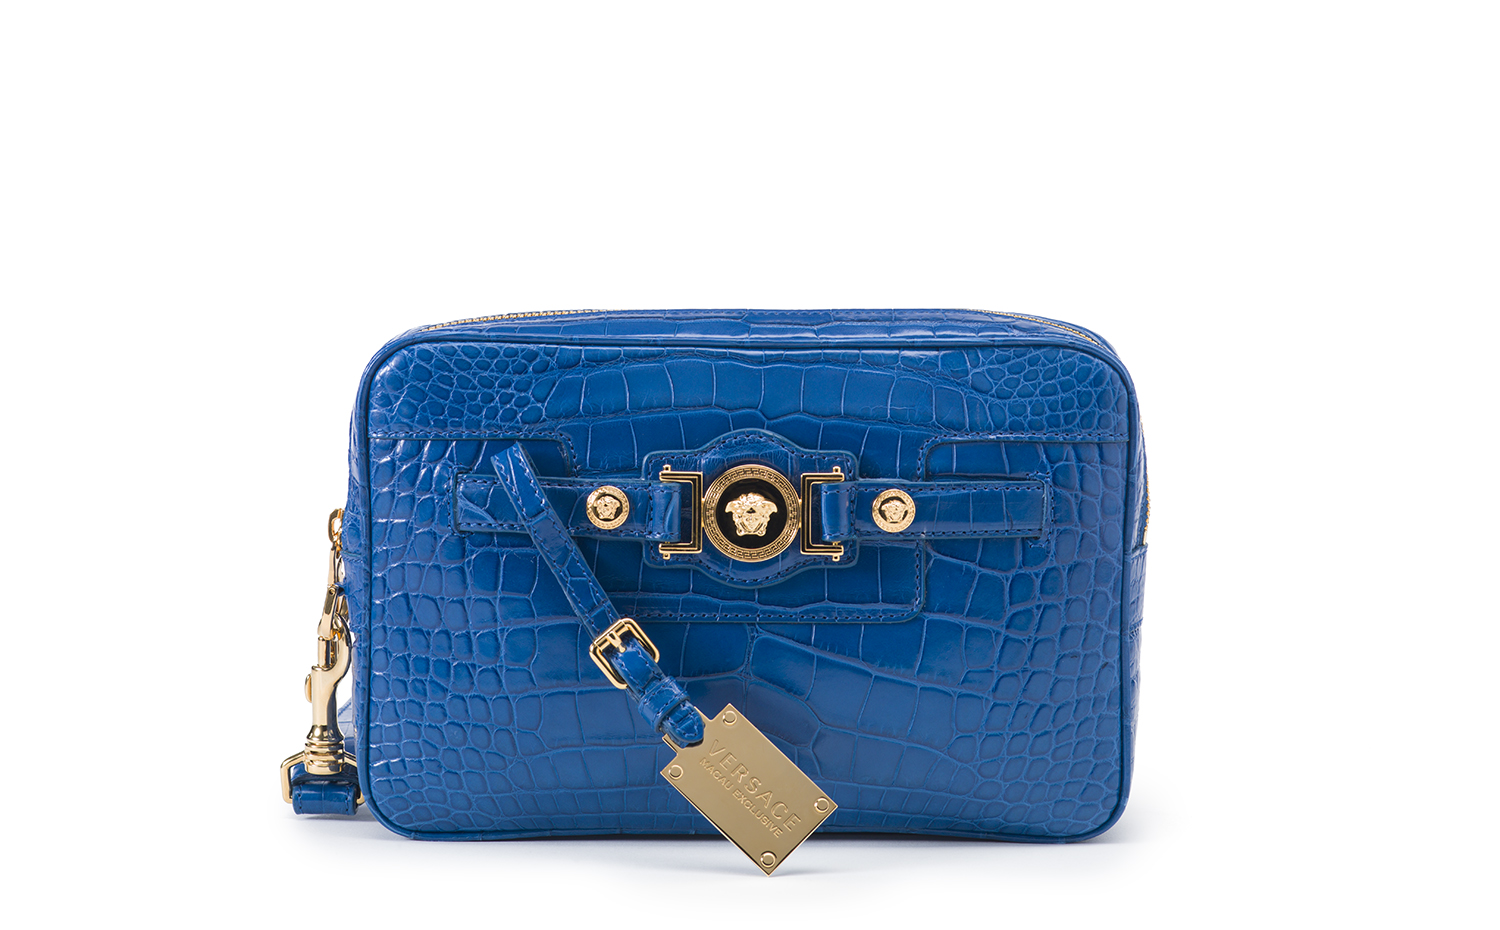 VERSACE PALAZZA HANDBAG BLUE ALLIGATOR